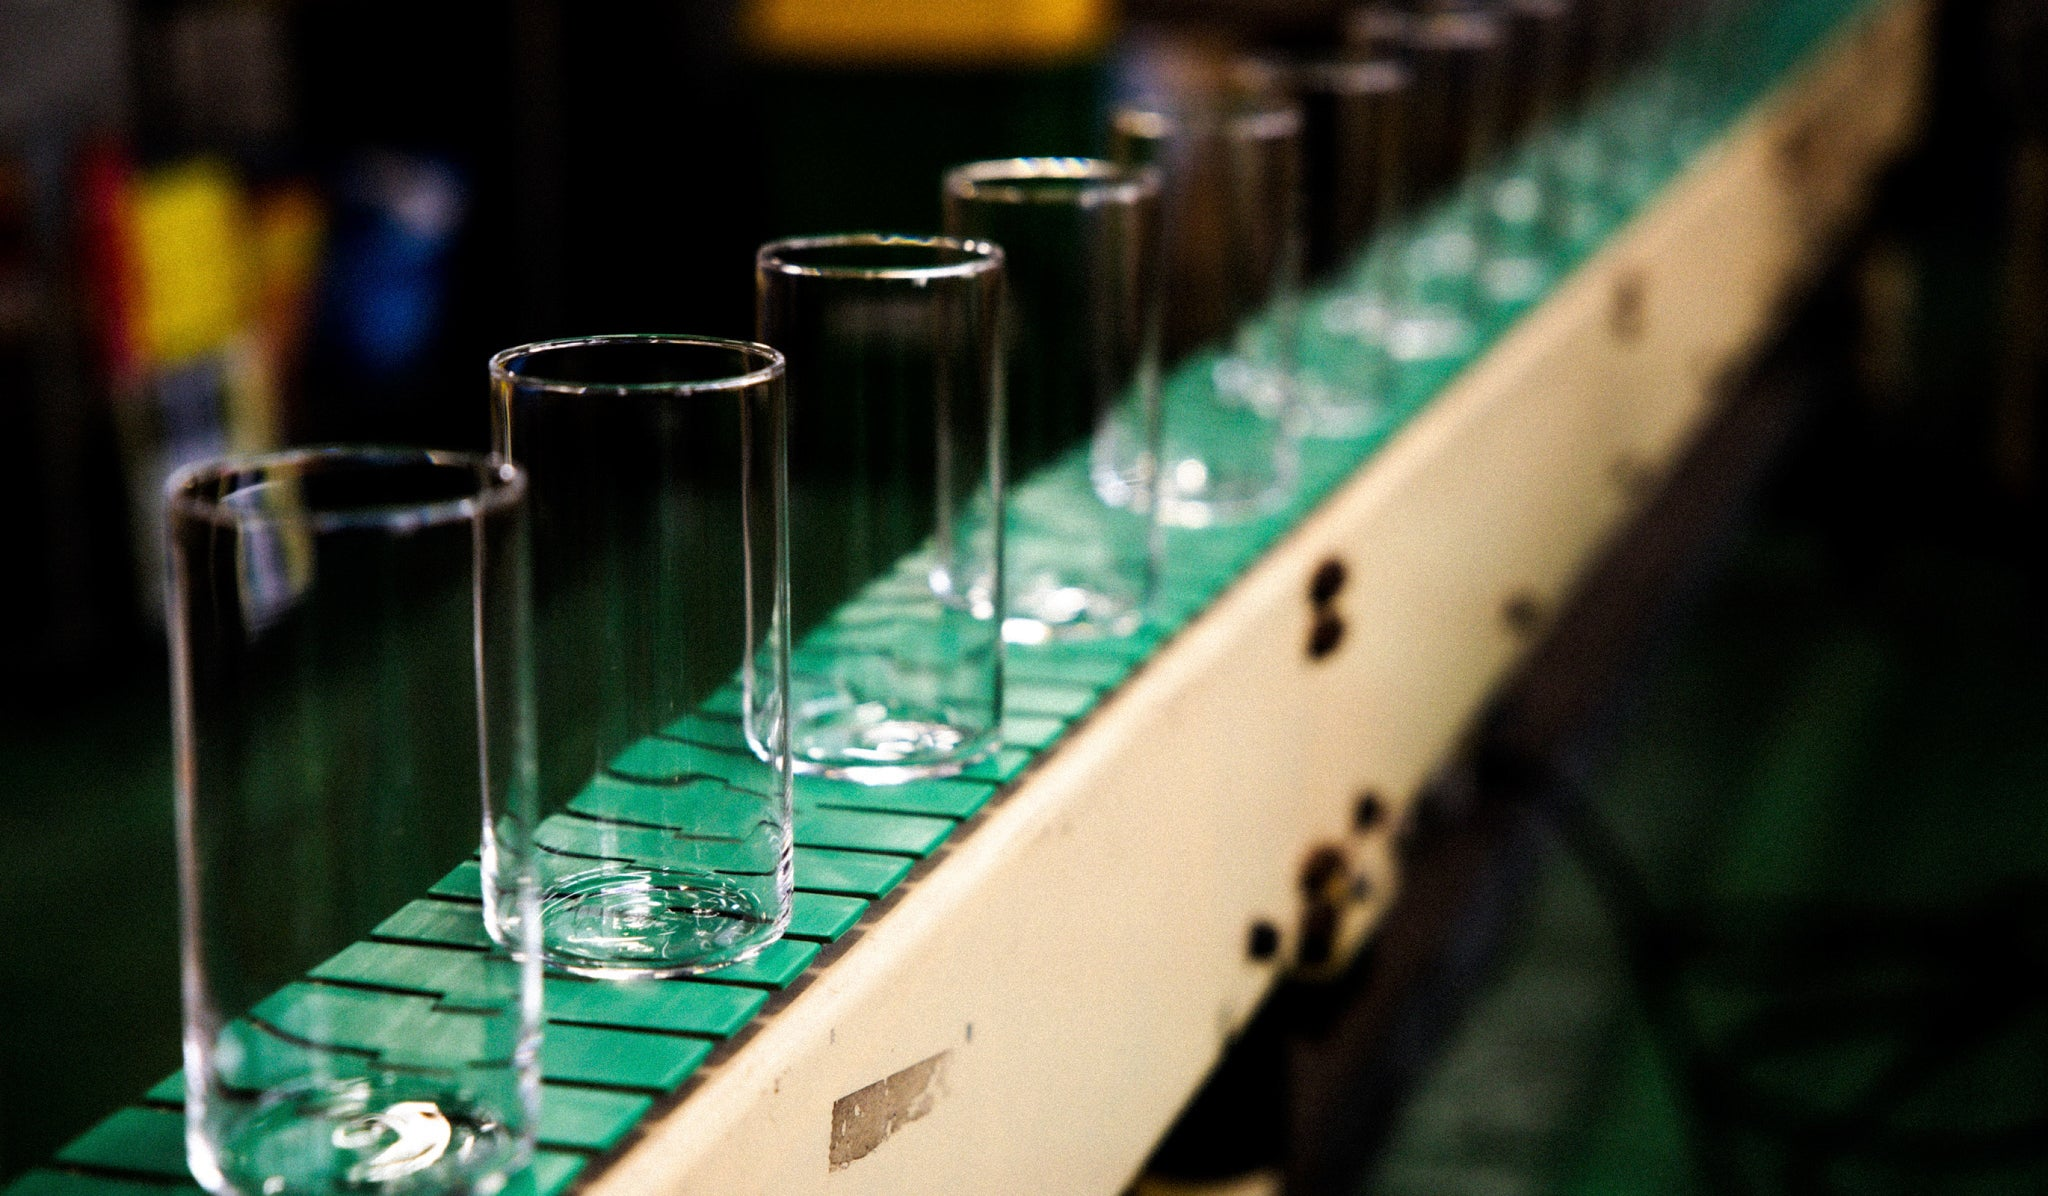 Sode Lime glassware on production line